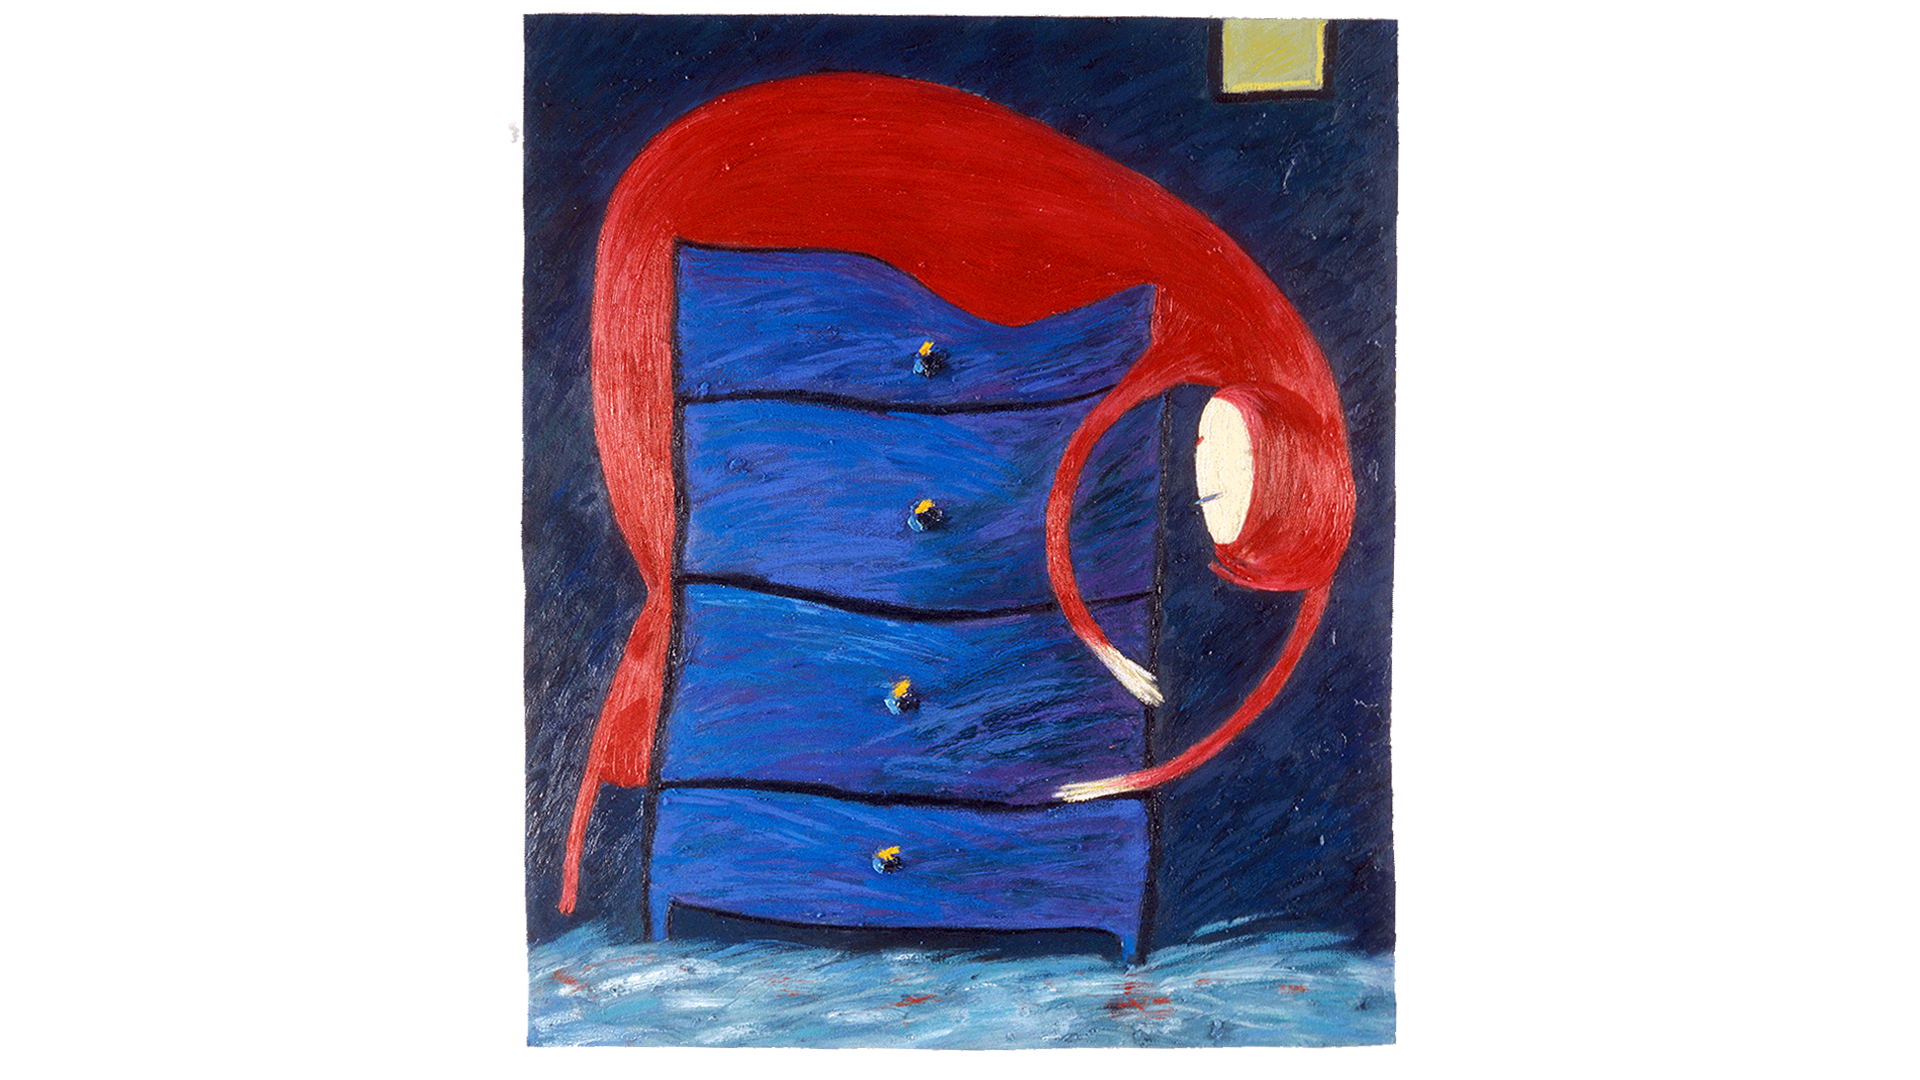 virginiahalstead.com/Paintings/Hope-chest.png